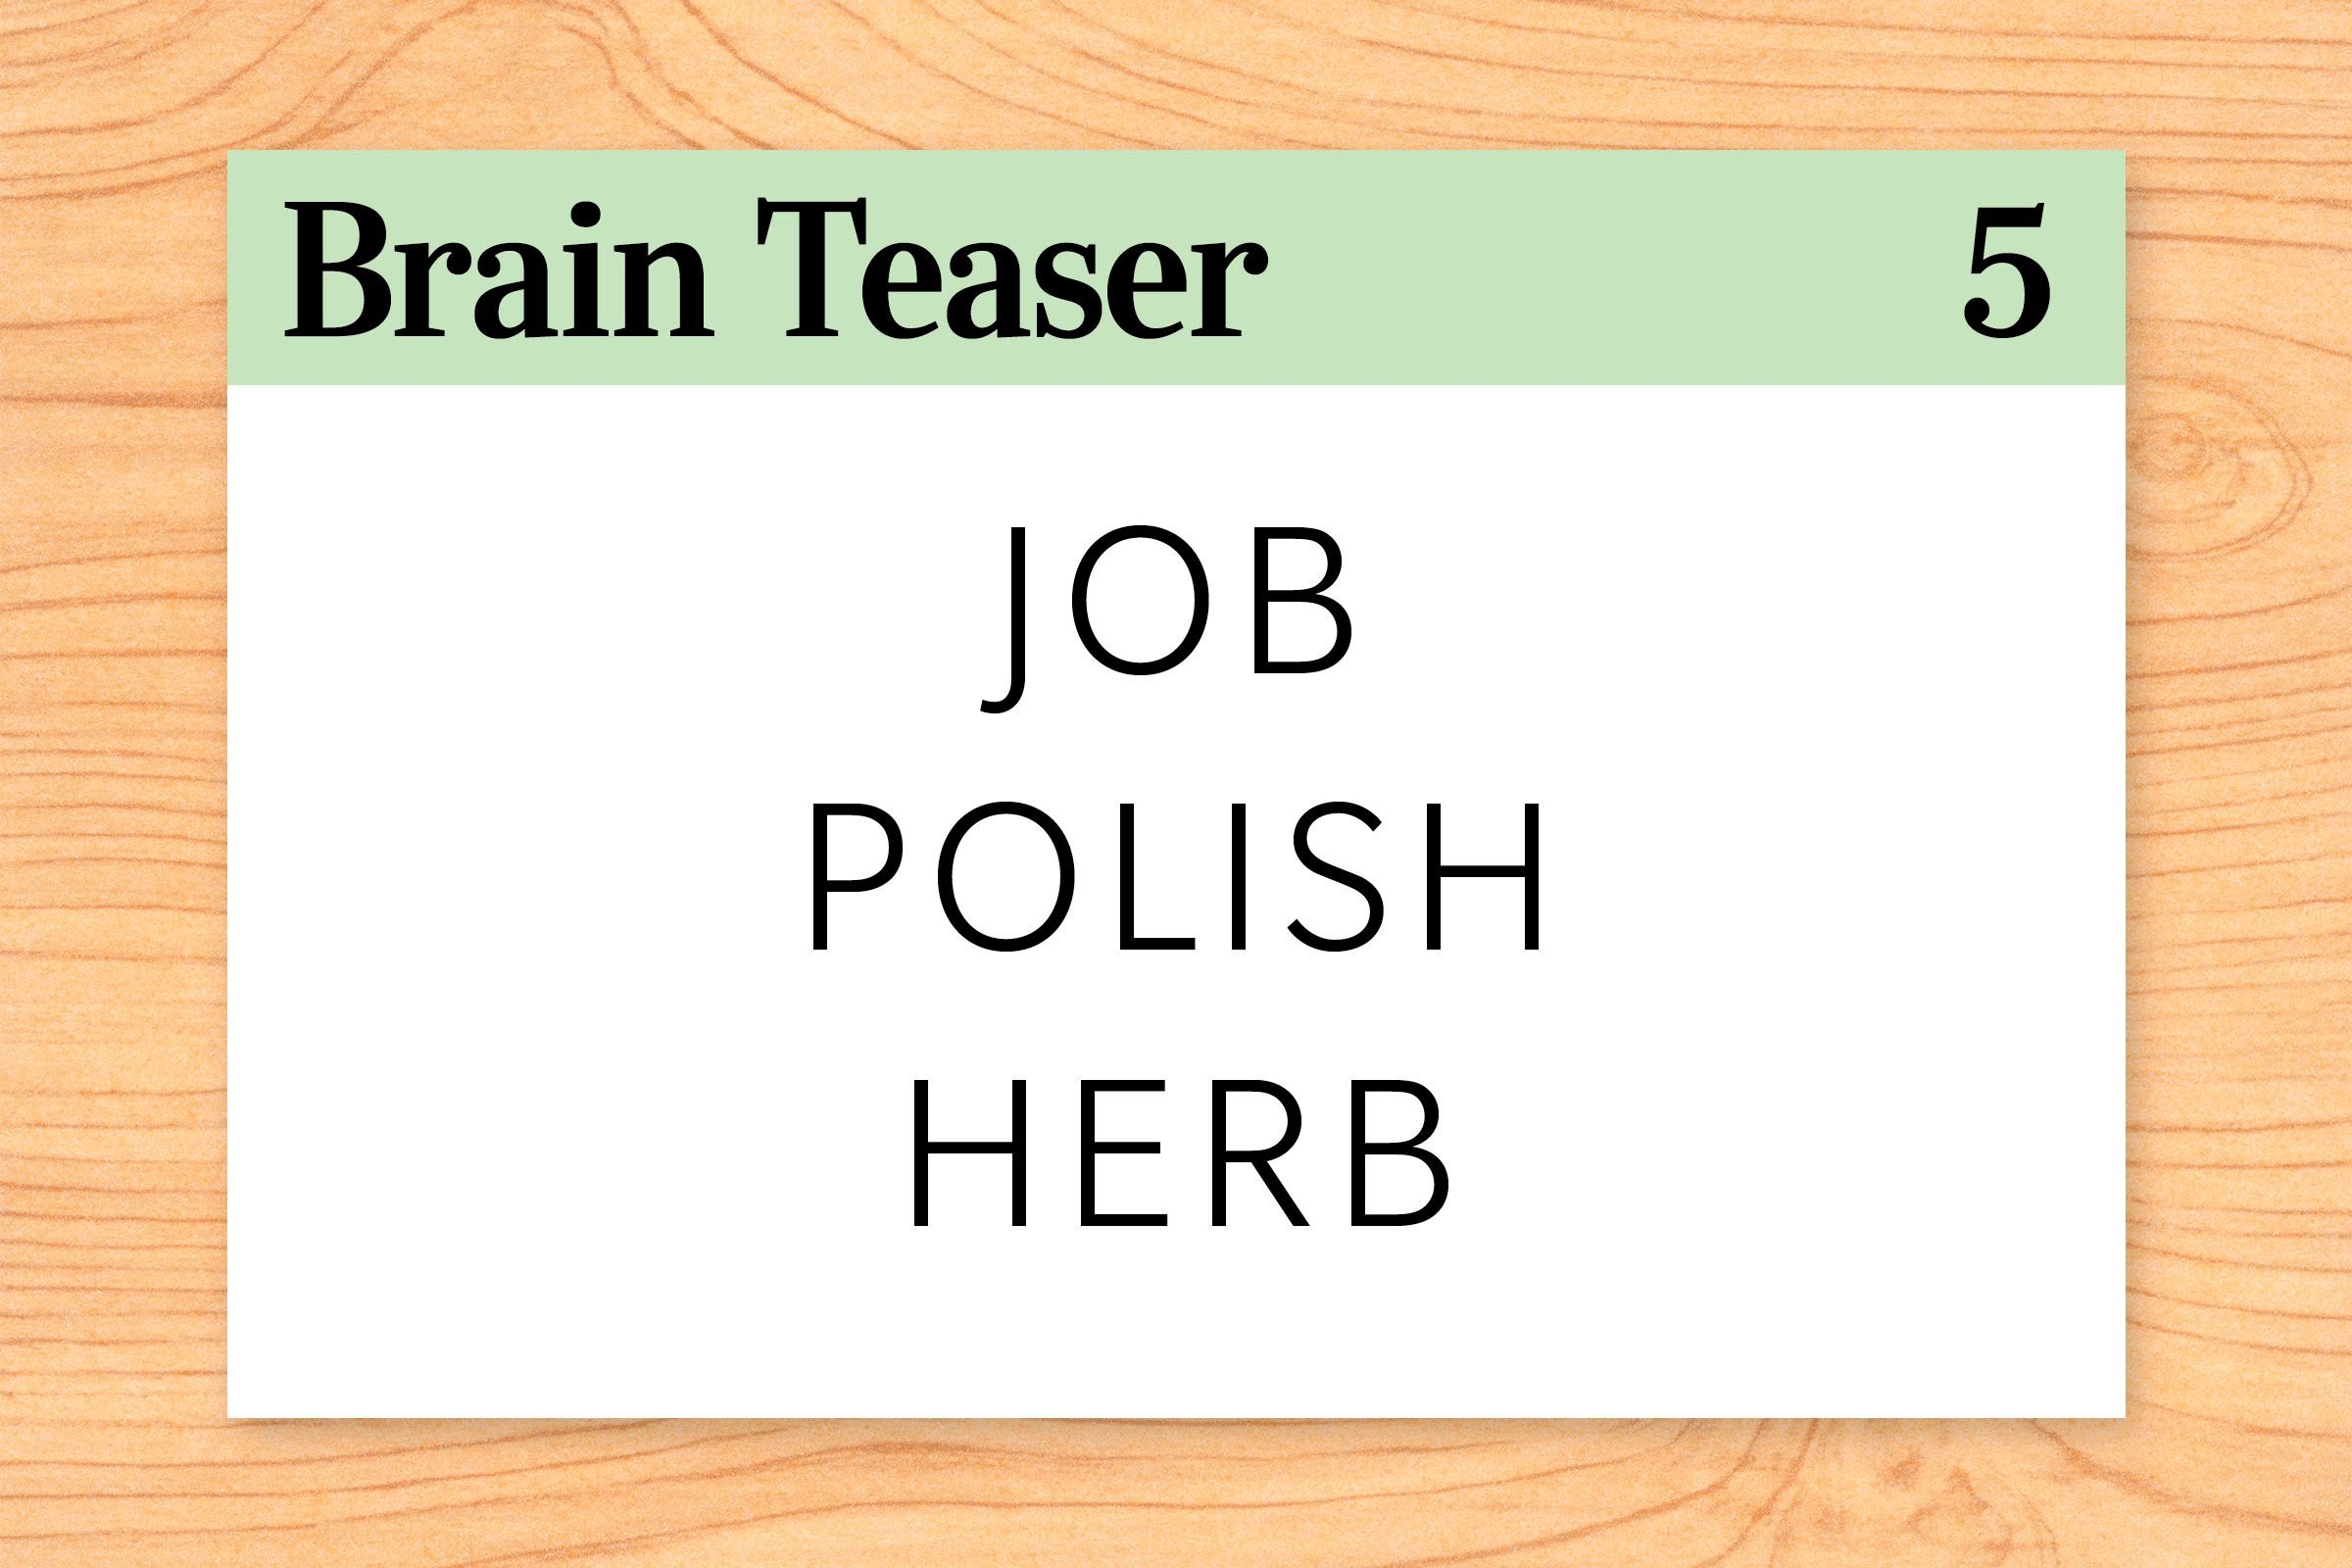 What is special about these words: job, polish, herb?